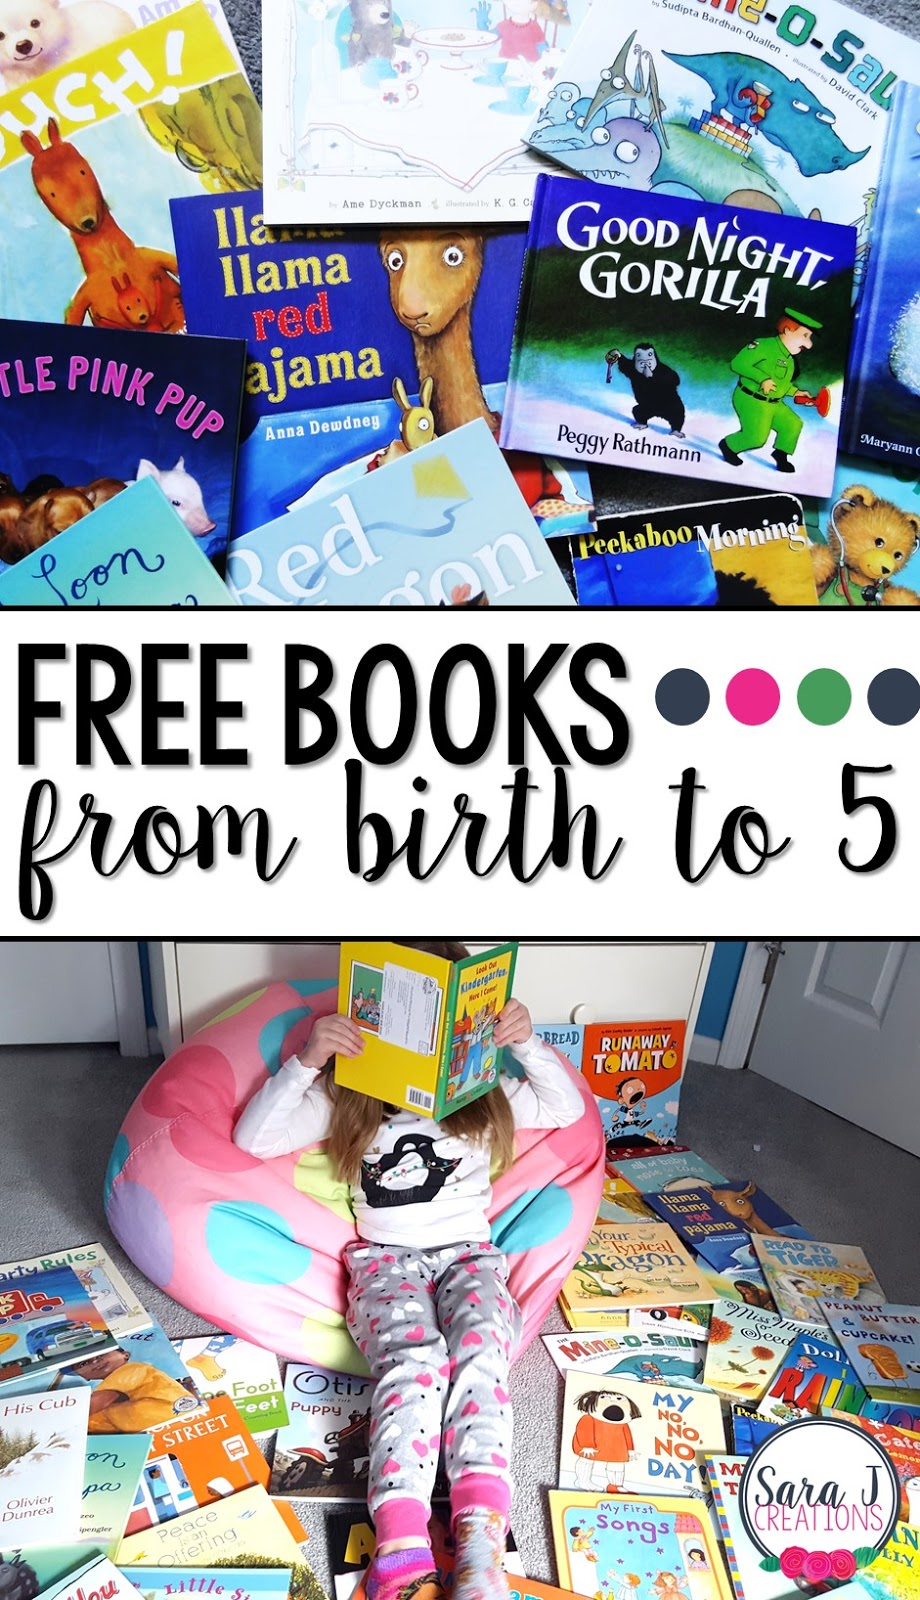 Free children's books from birth through age 5 thanks to Dolly Parton's Imagination Library.  So many awesome picture books for free.